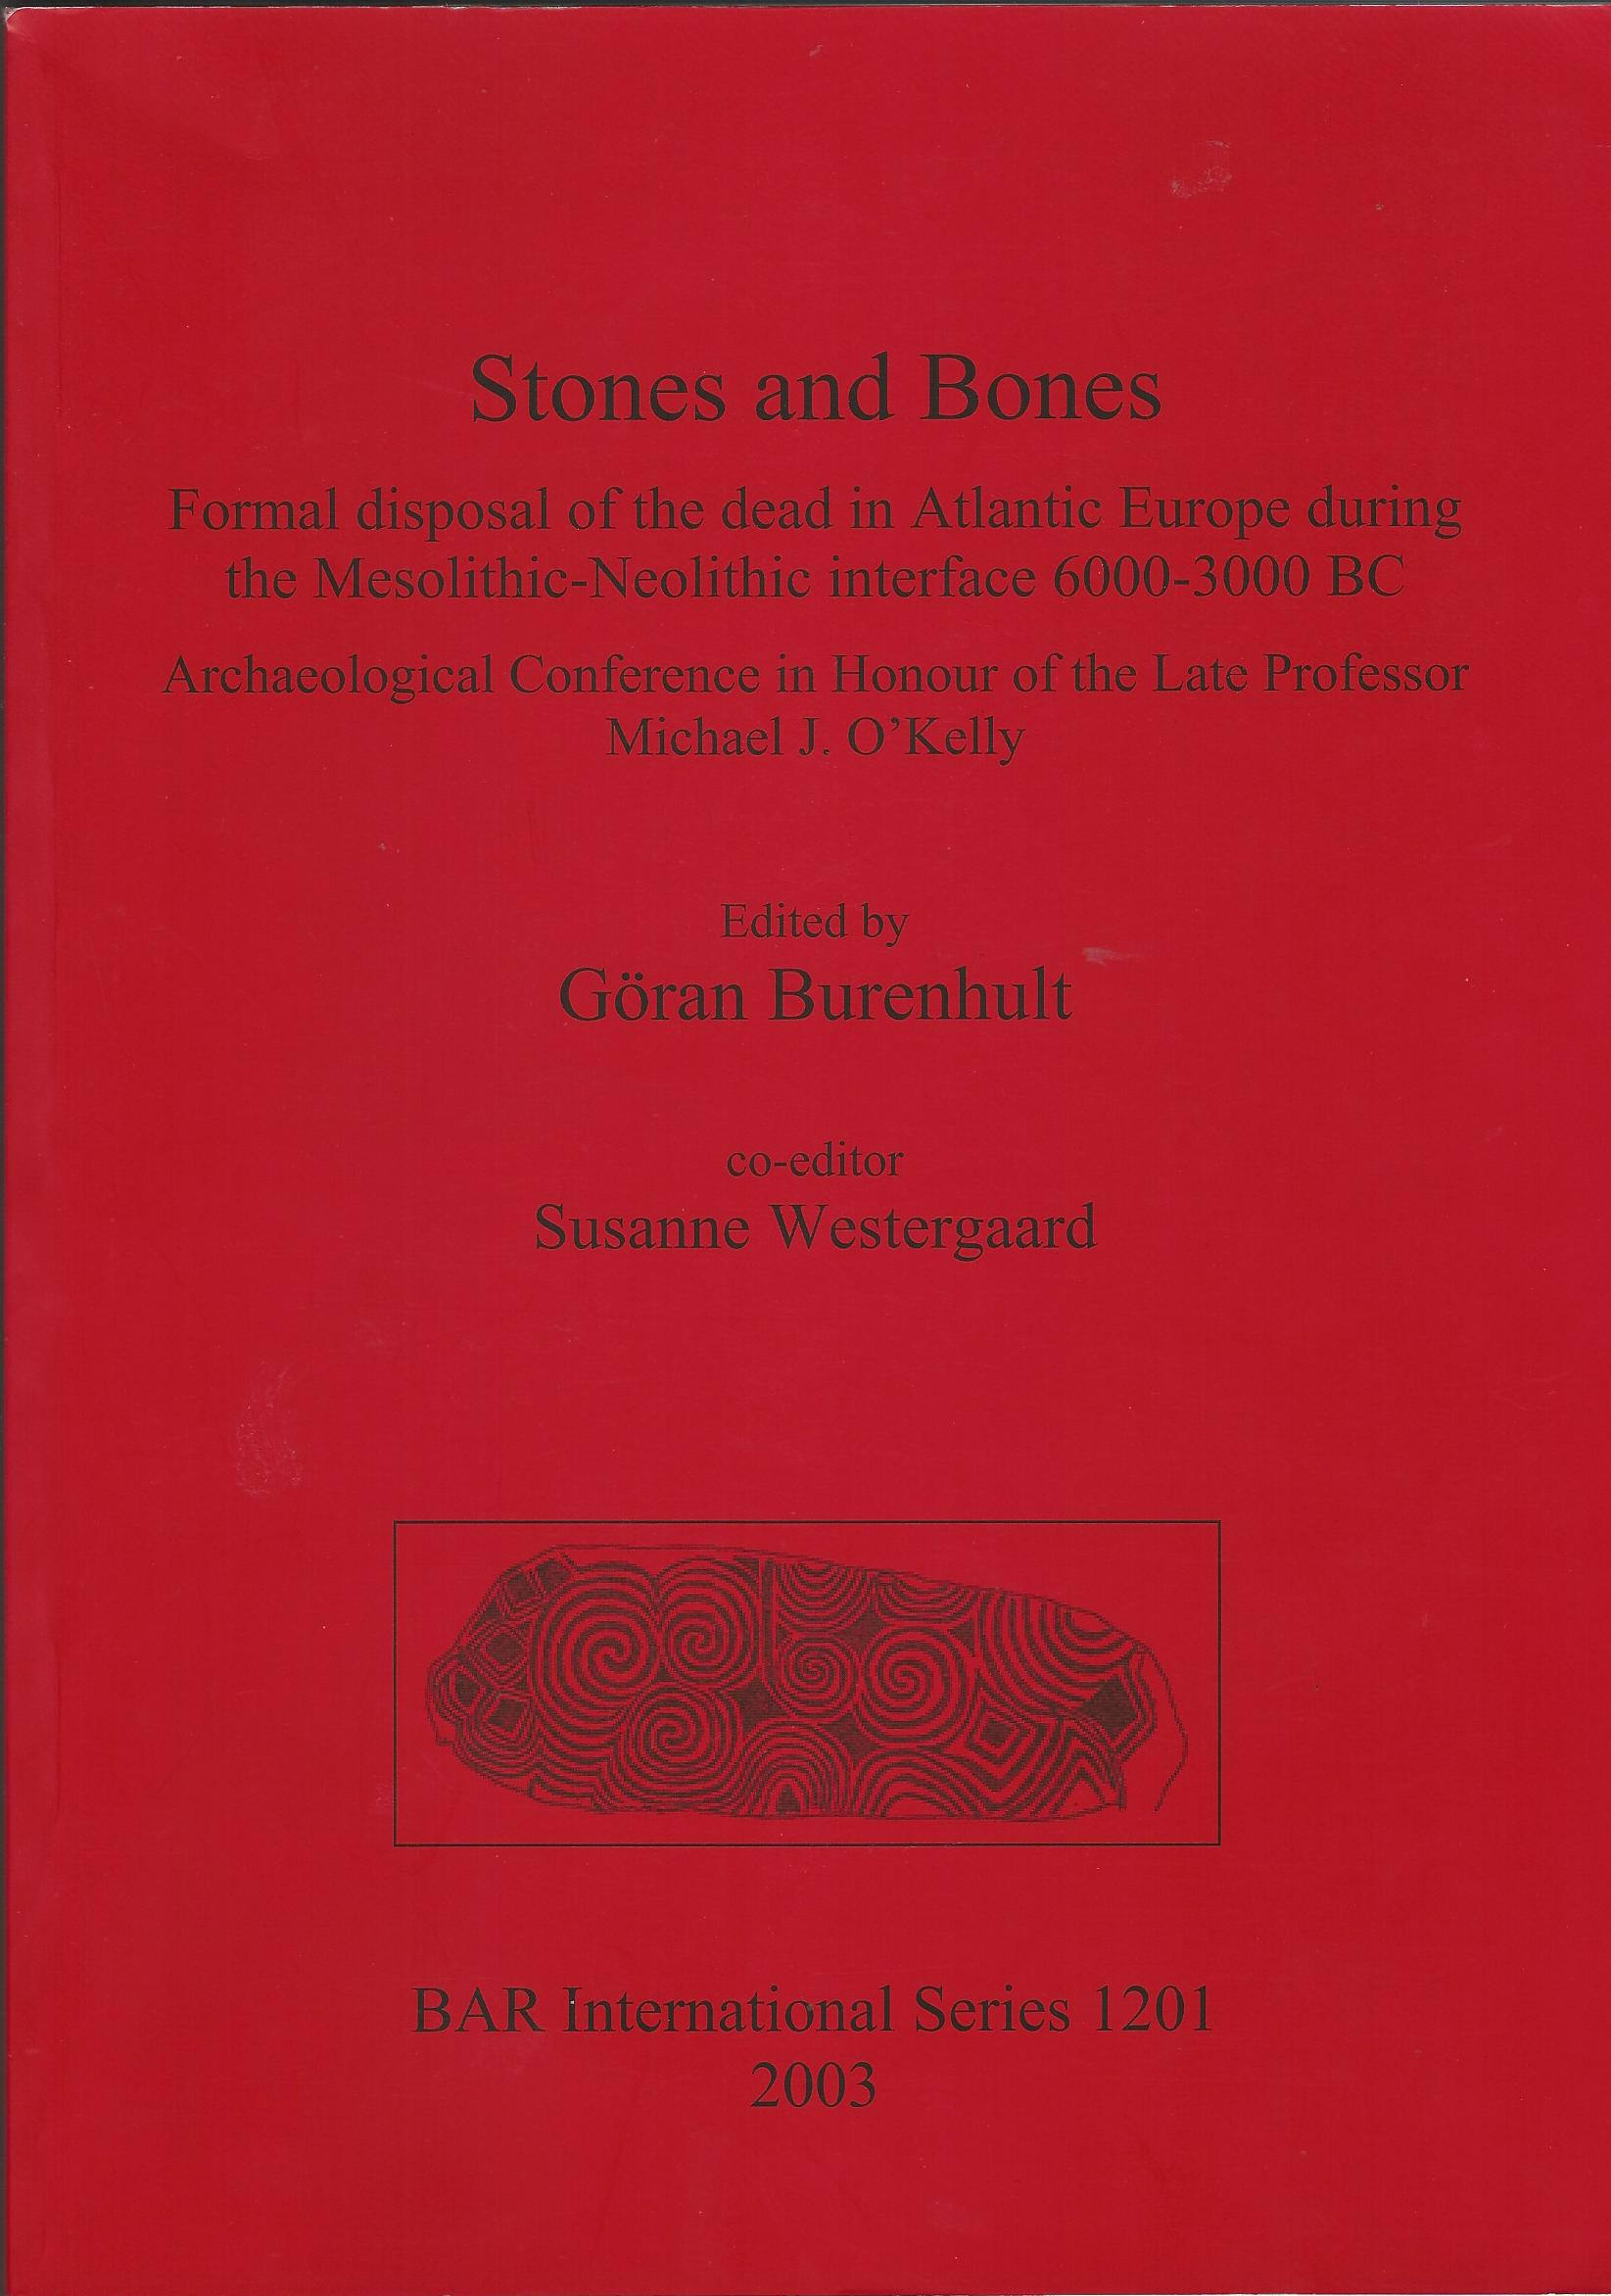 Image for Stones and Bones: Formal disposal of the dead in Atlantic Europe during the Mesolithic-Neolithic interface 6000-3000 BC: Formal Disposal of the Dead ... Michael J. O'Kelly (BAR International Series)